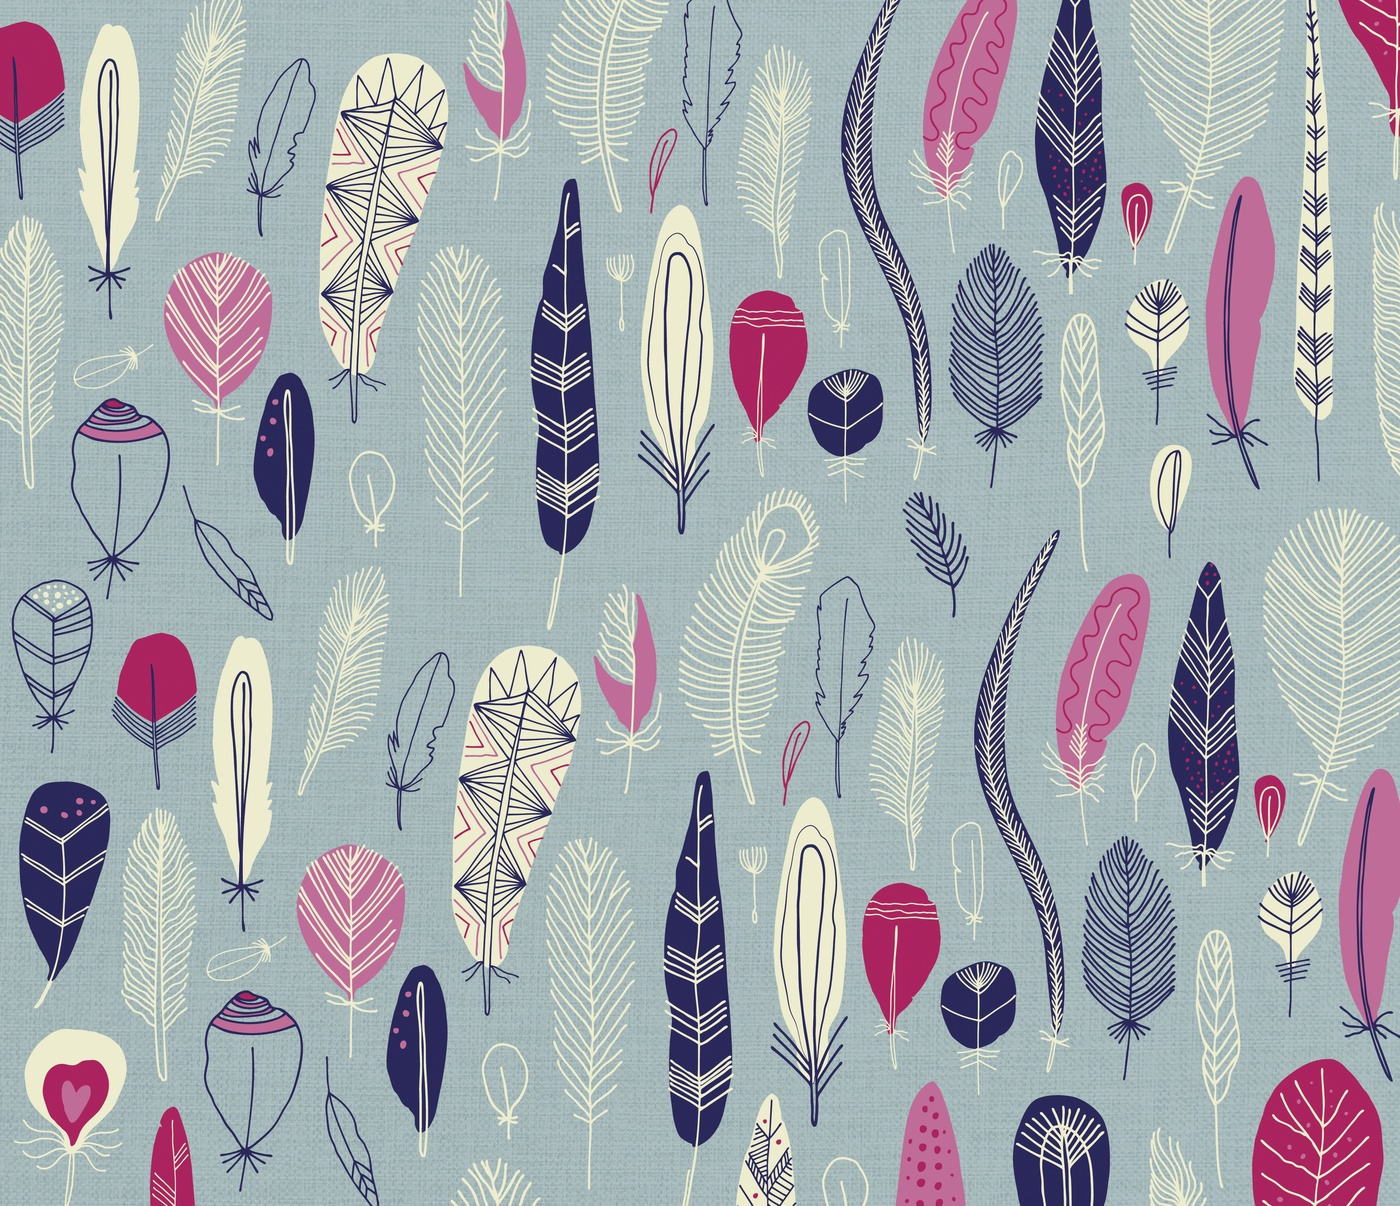 Nathalie Taylor - Design textile / Surface Design